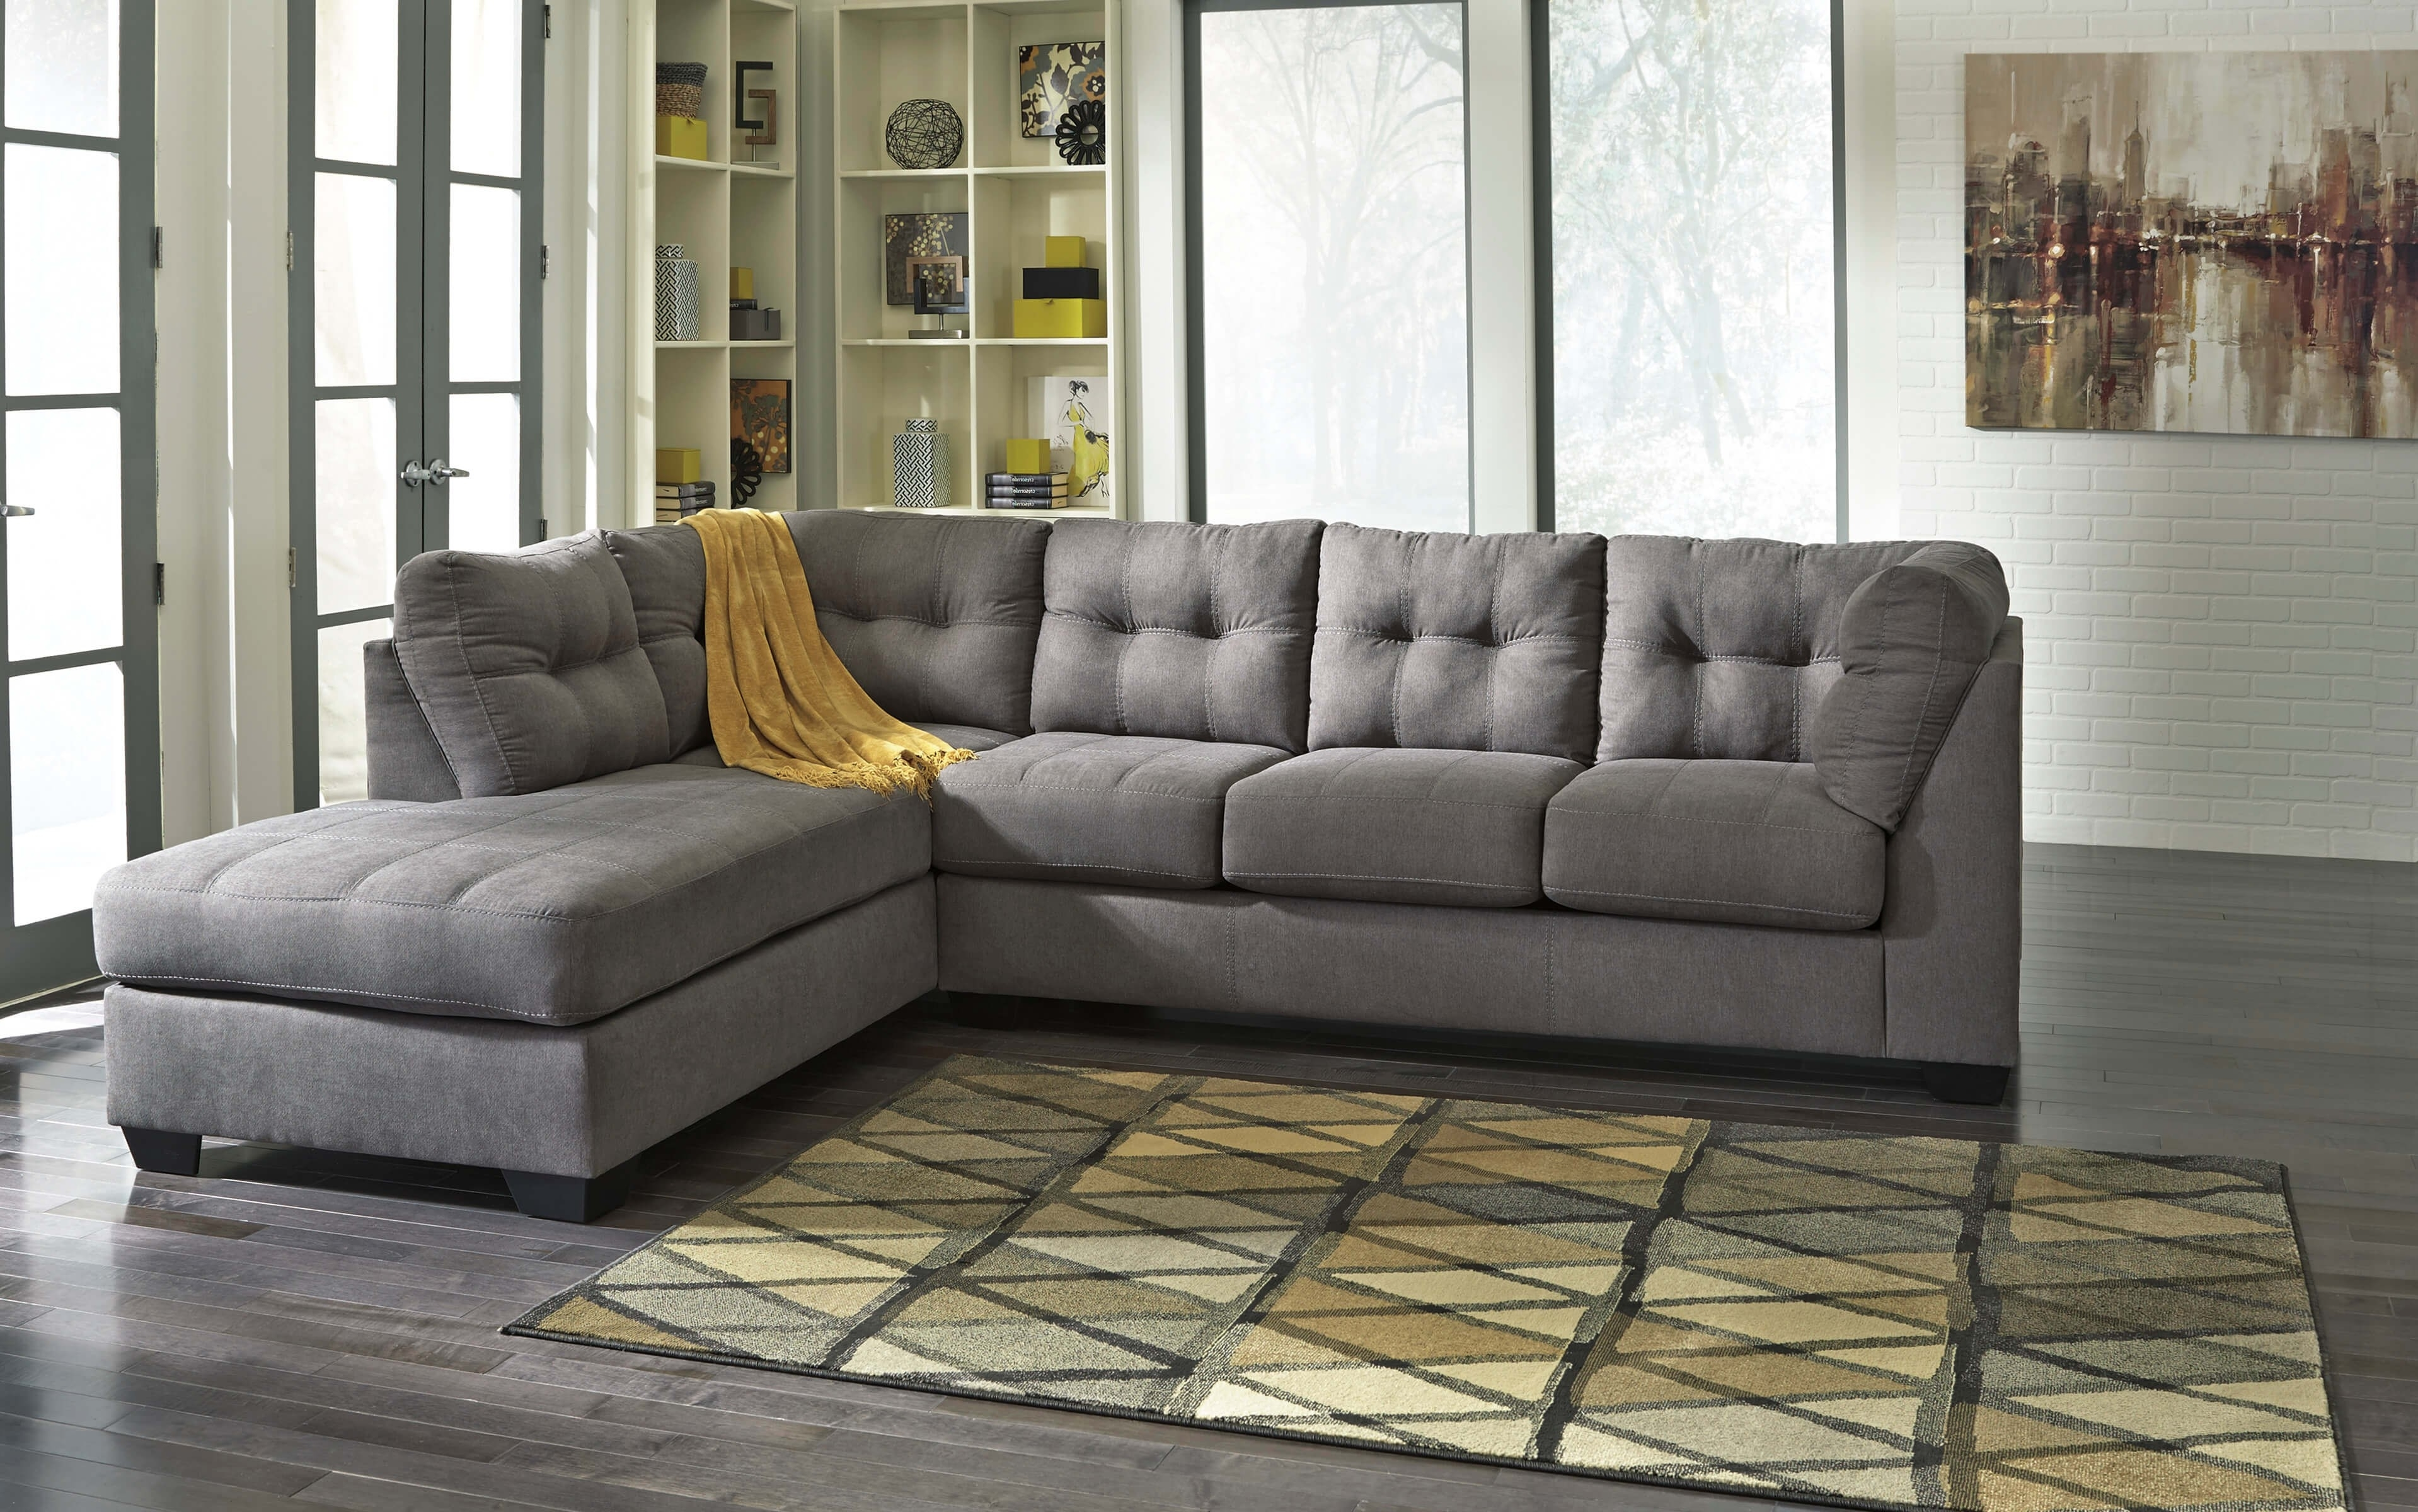 Simmons Venture Smoke Fabric Sectional Udf Products Bacarat Taupe With Sierra Down 3 Piece Sectionals With Laf Chaise (View 28 of 30)